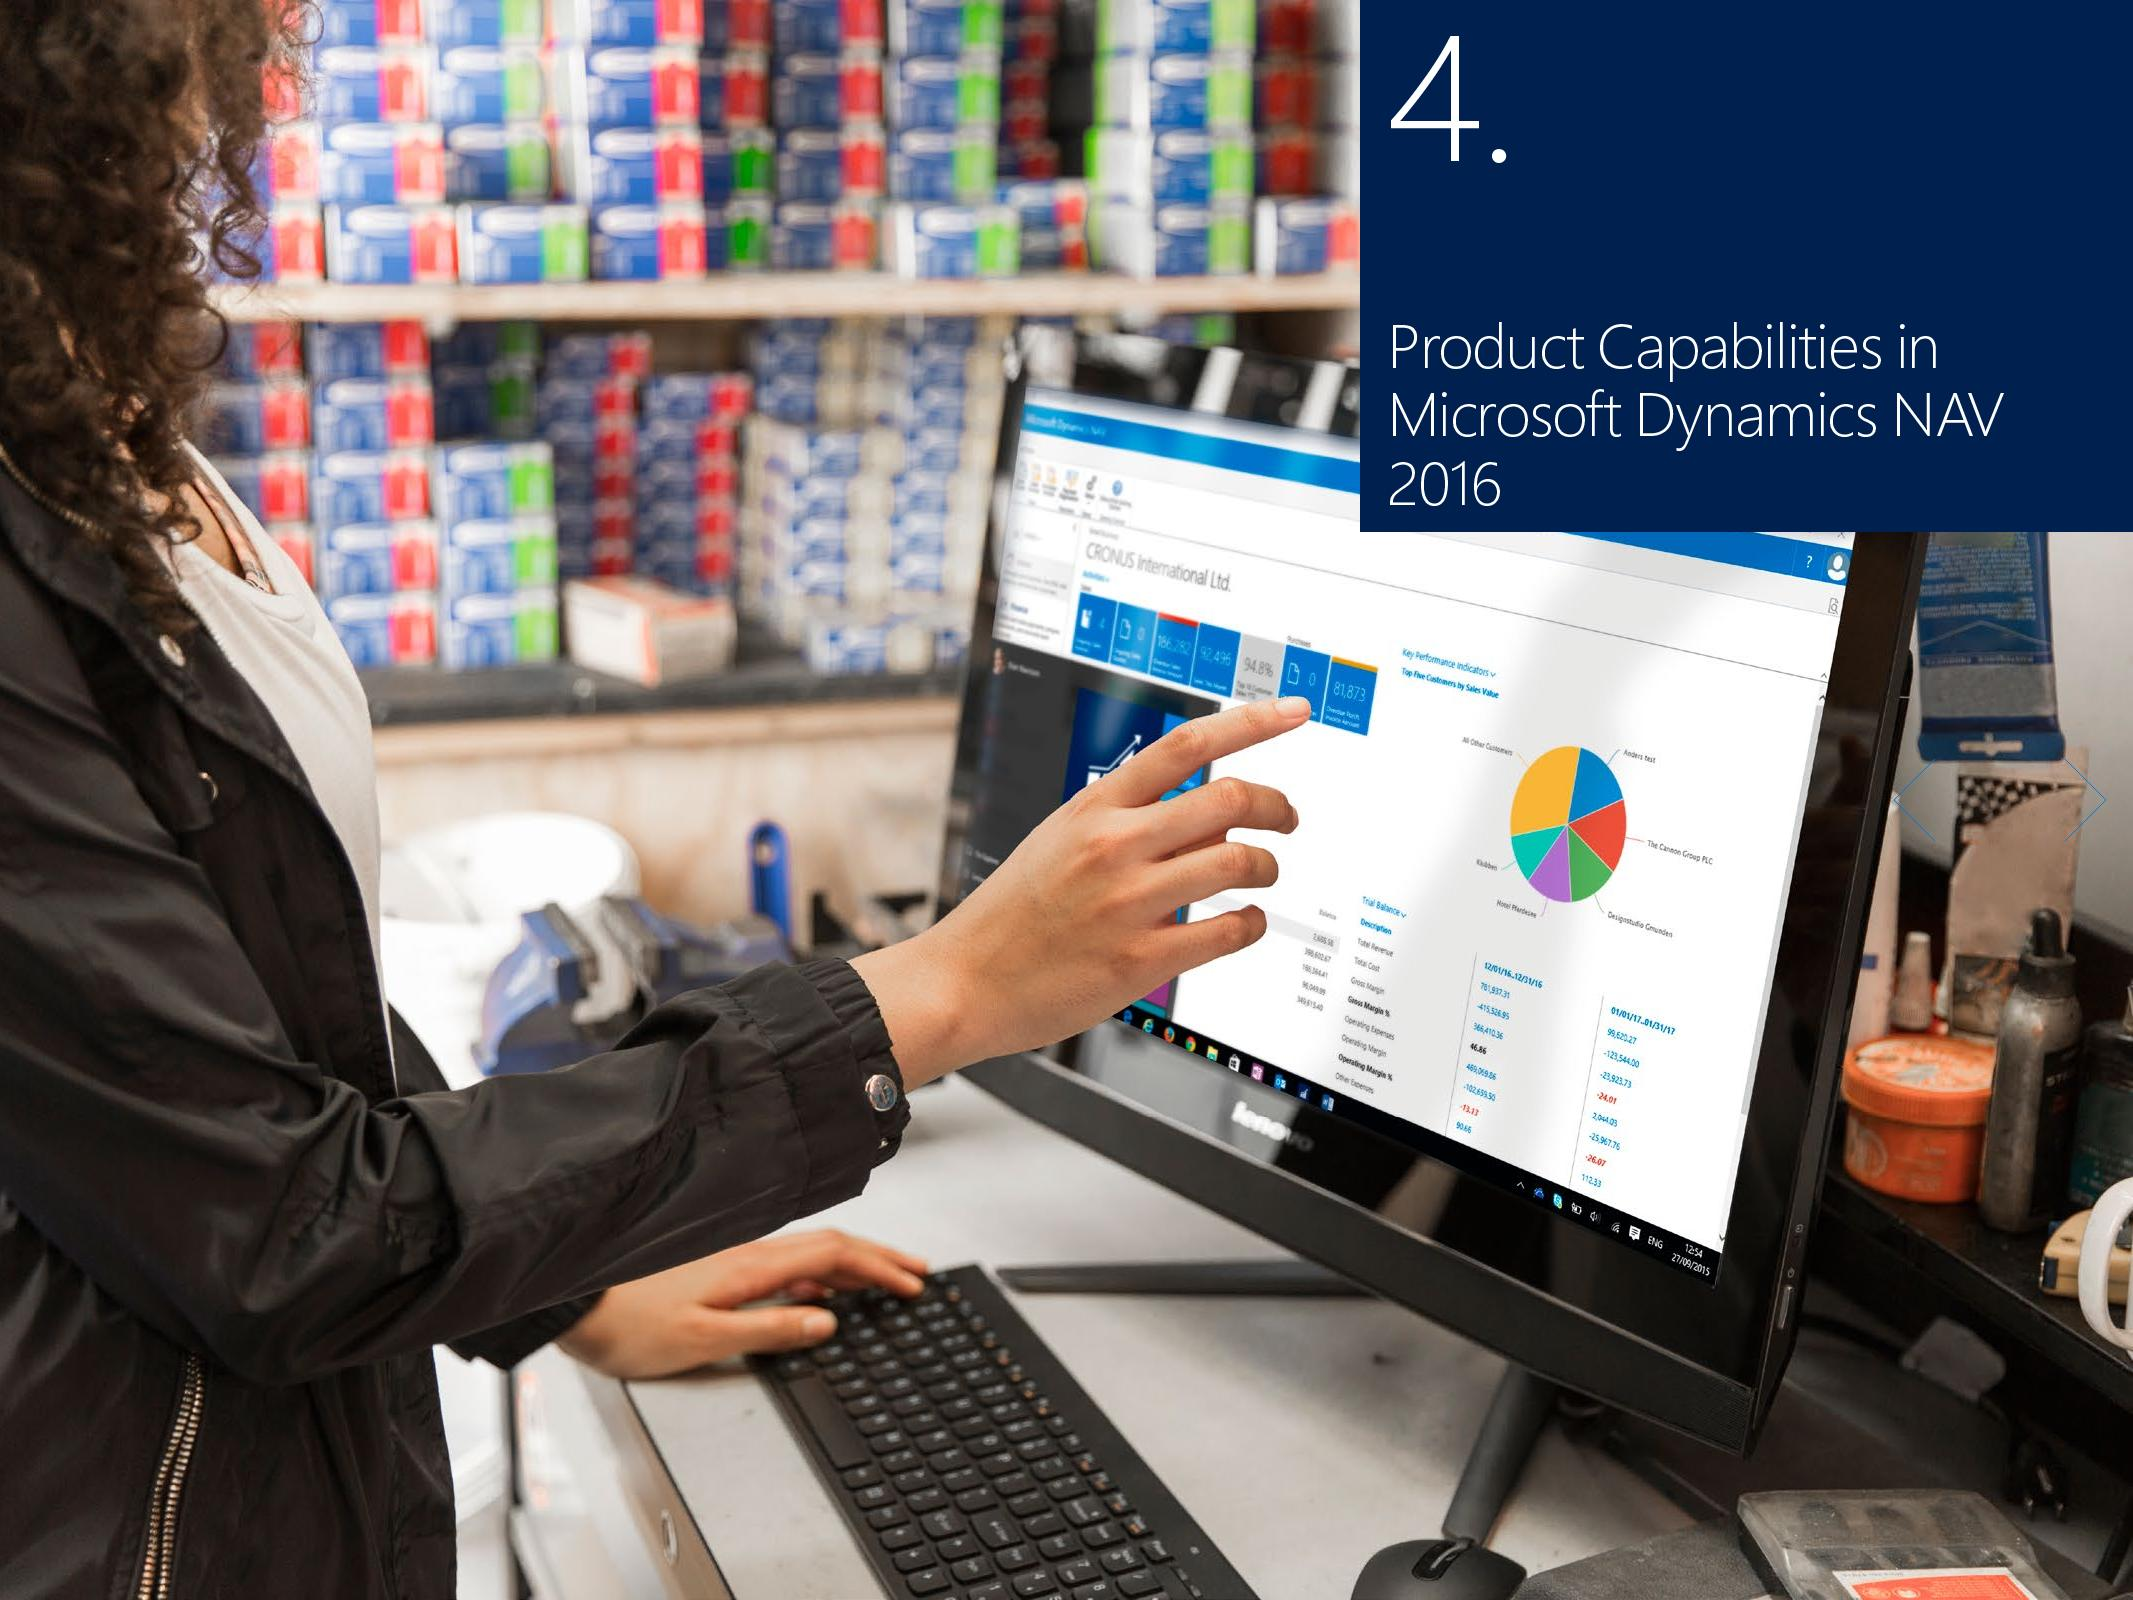 microsoftdynamicsnav2016_productoverview_and_capabilityguide-page-013